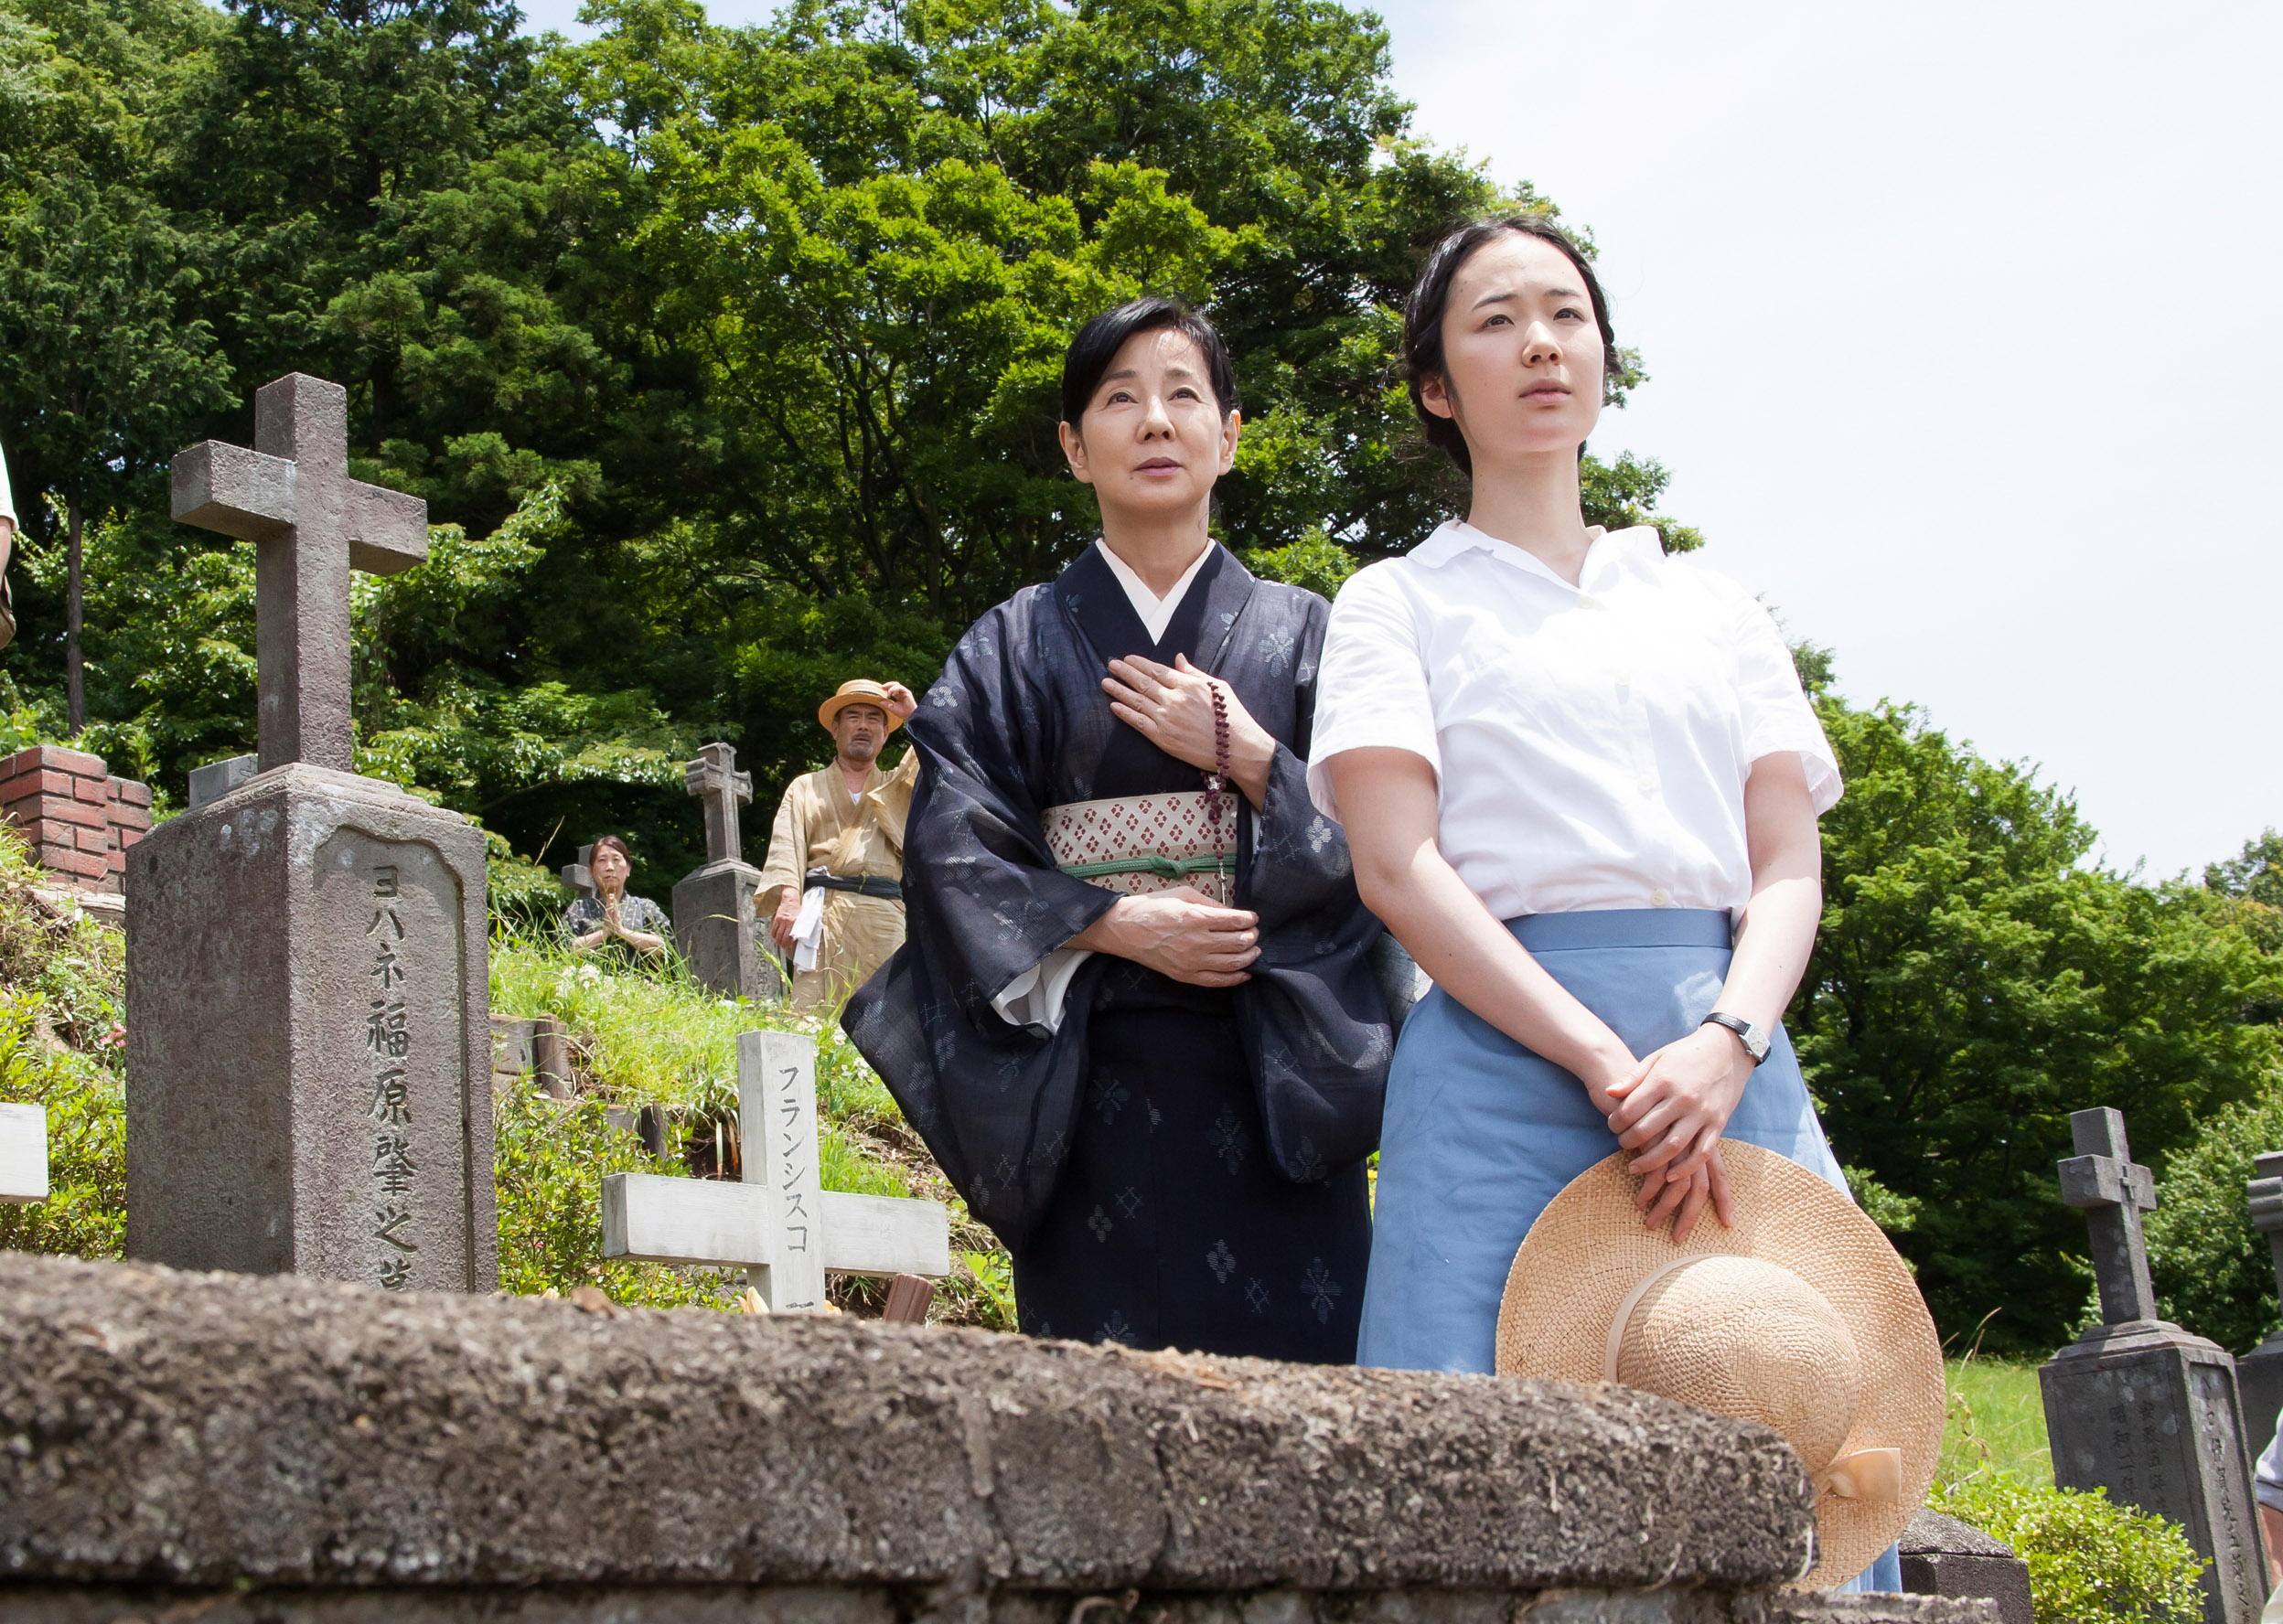 NAGASAKI: MEMORIES OF MY SON - JAPAN   Official Oscars Submission for Foreign Language Film Award